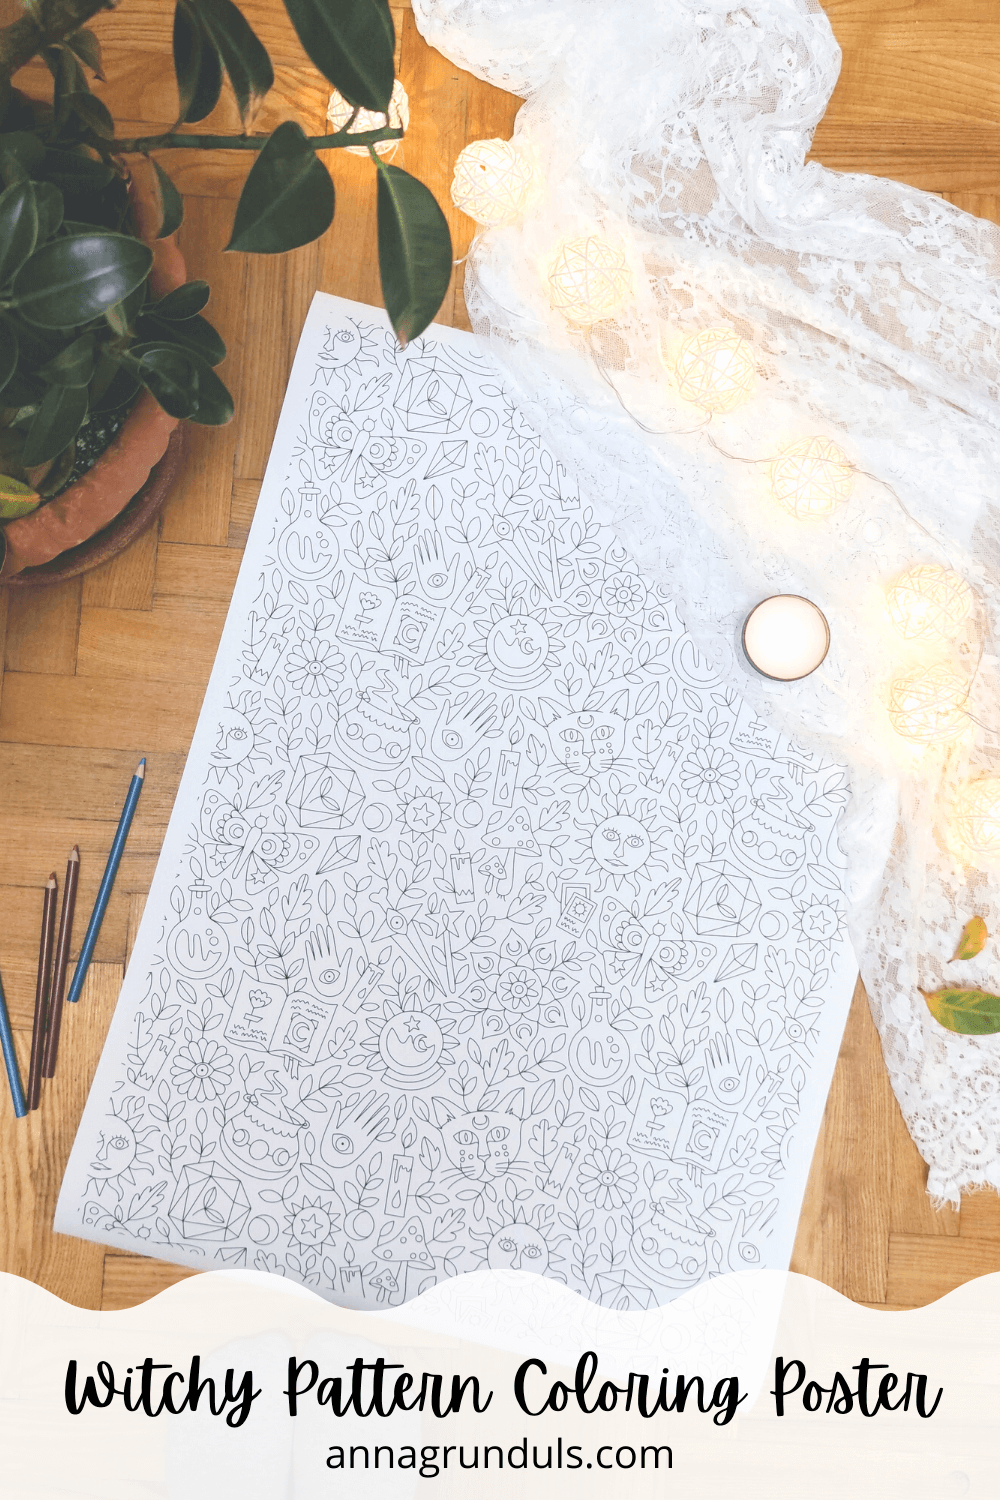 Witchy Pattern Adult Coloring Poster